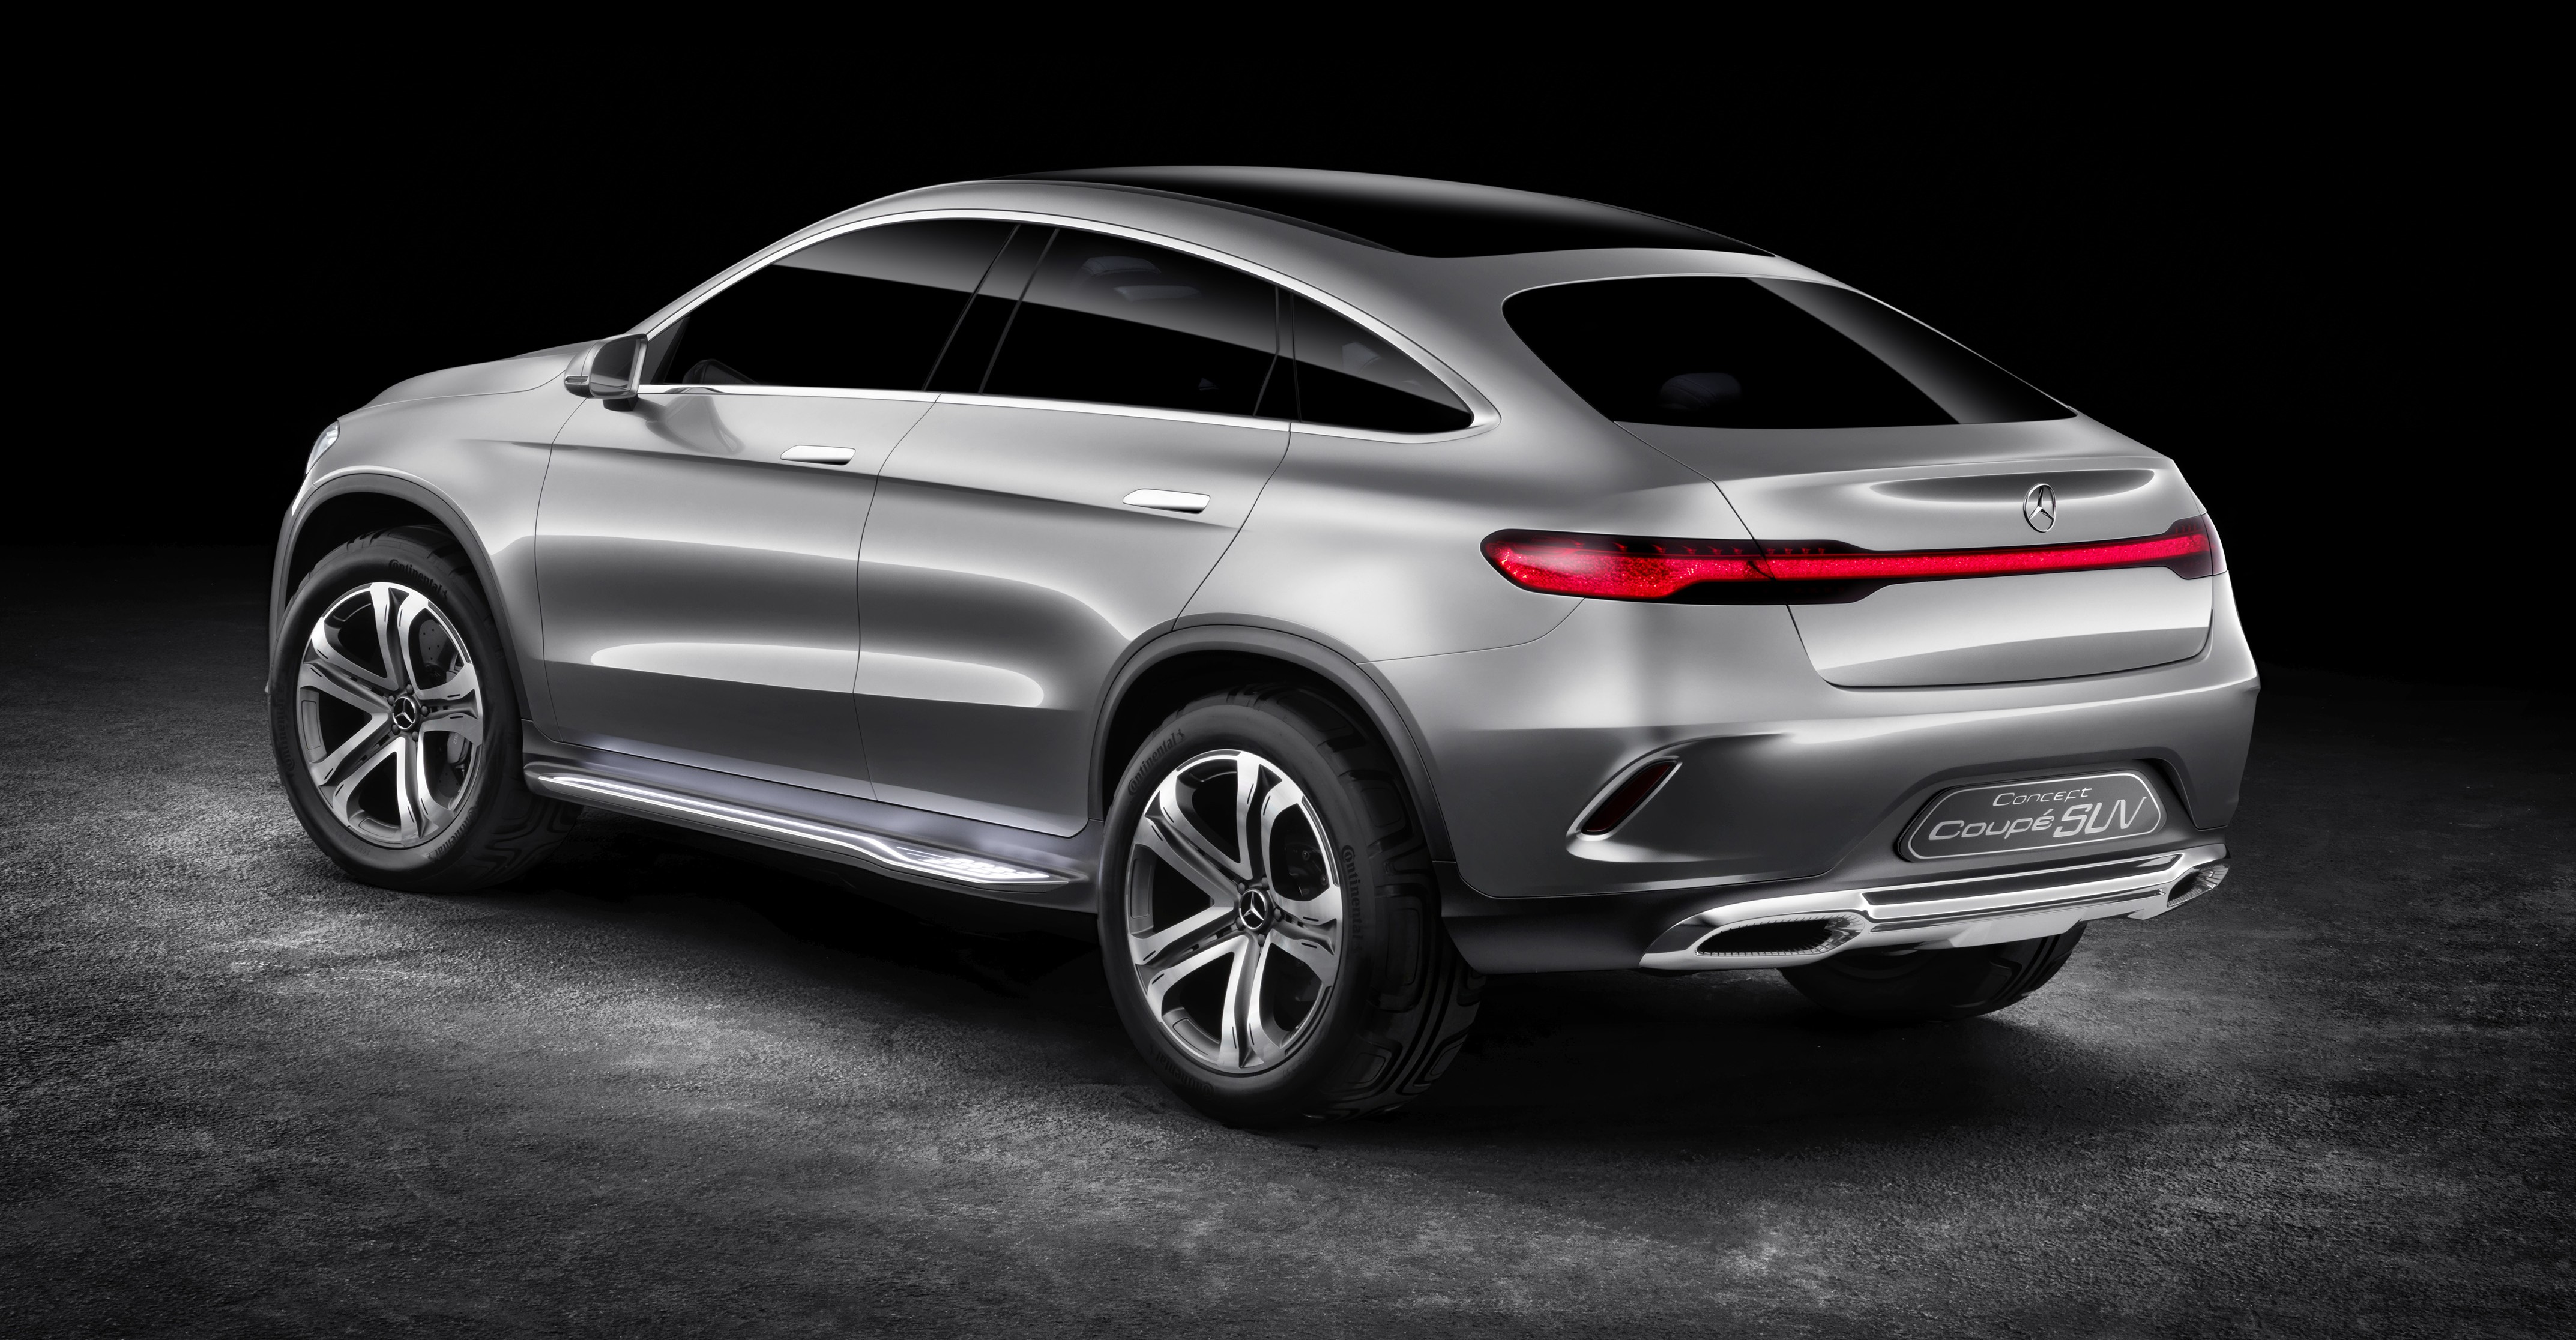 Mercedes Benz Coupe Suv Concept Previews X6 Rival Paul Tan